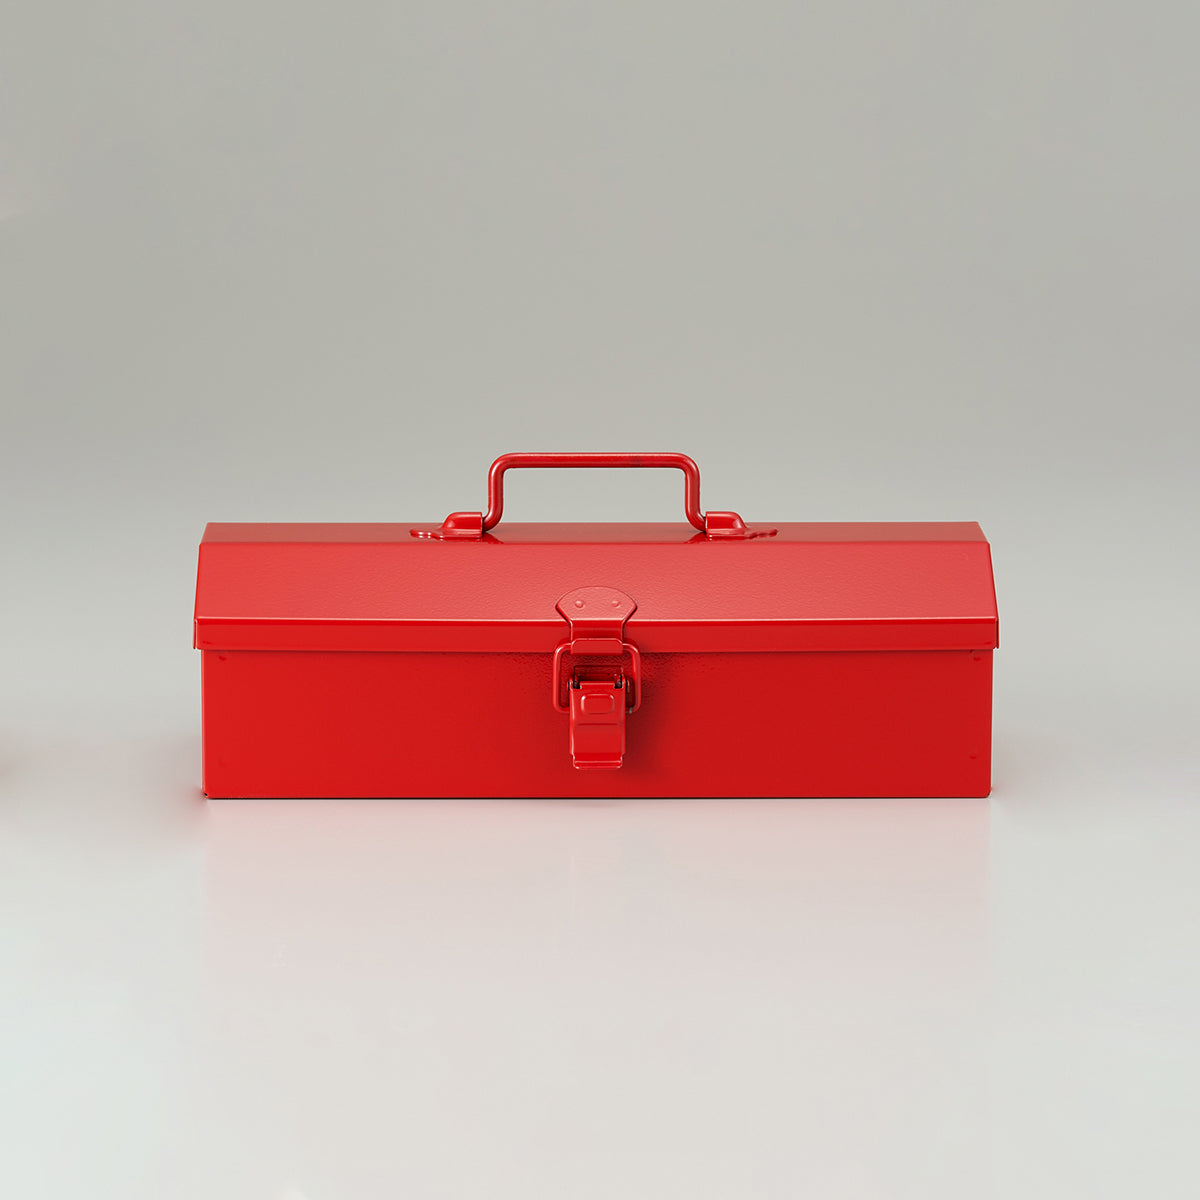 Cobako Mini Box RED  / Y-12 - The Outsiders